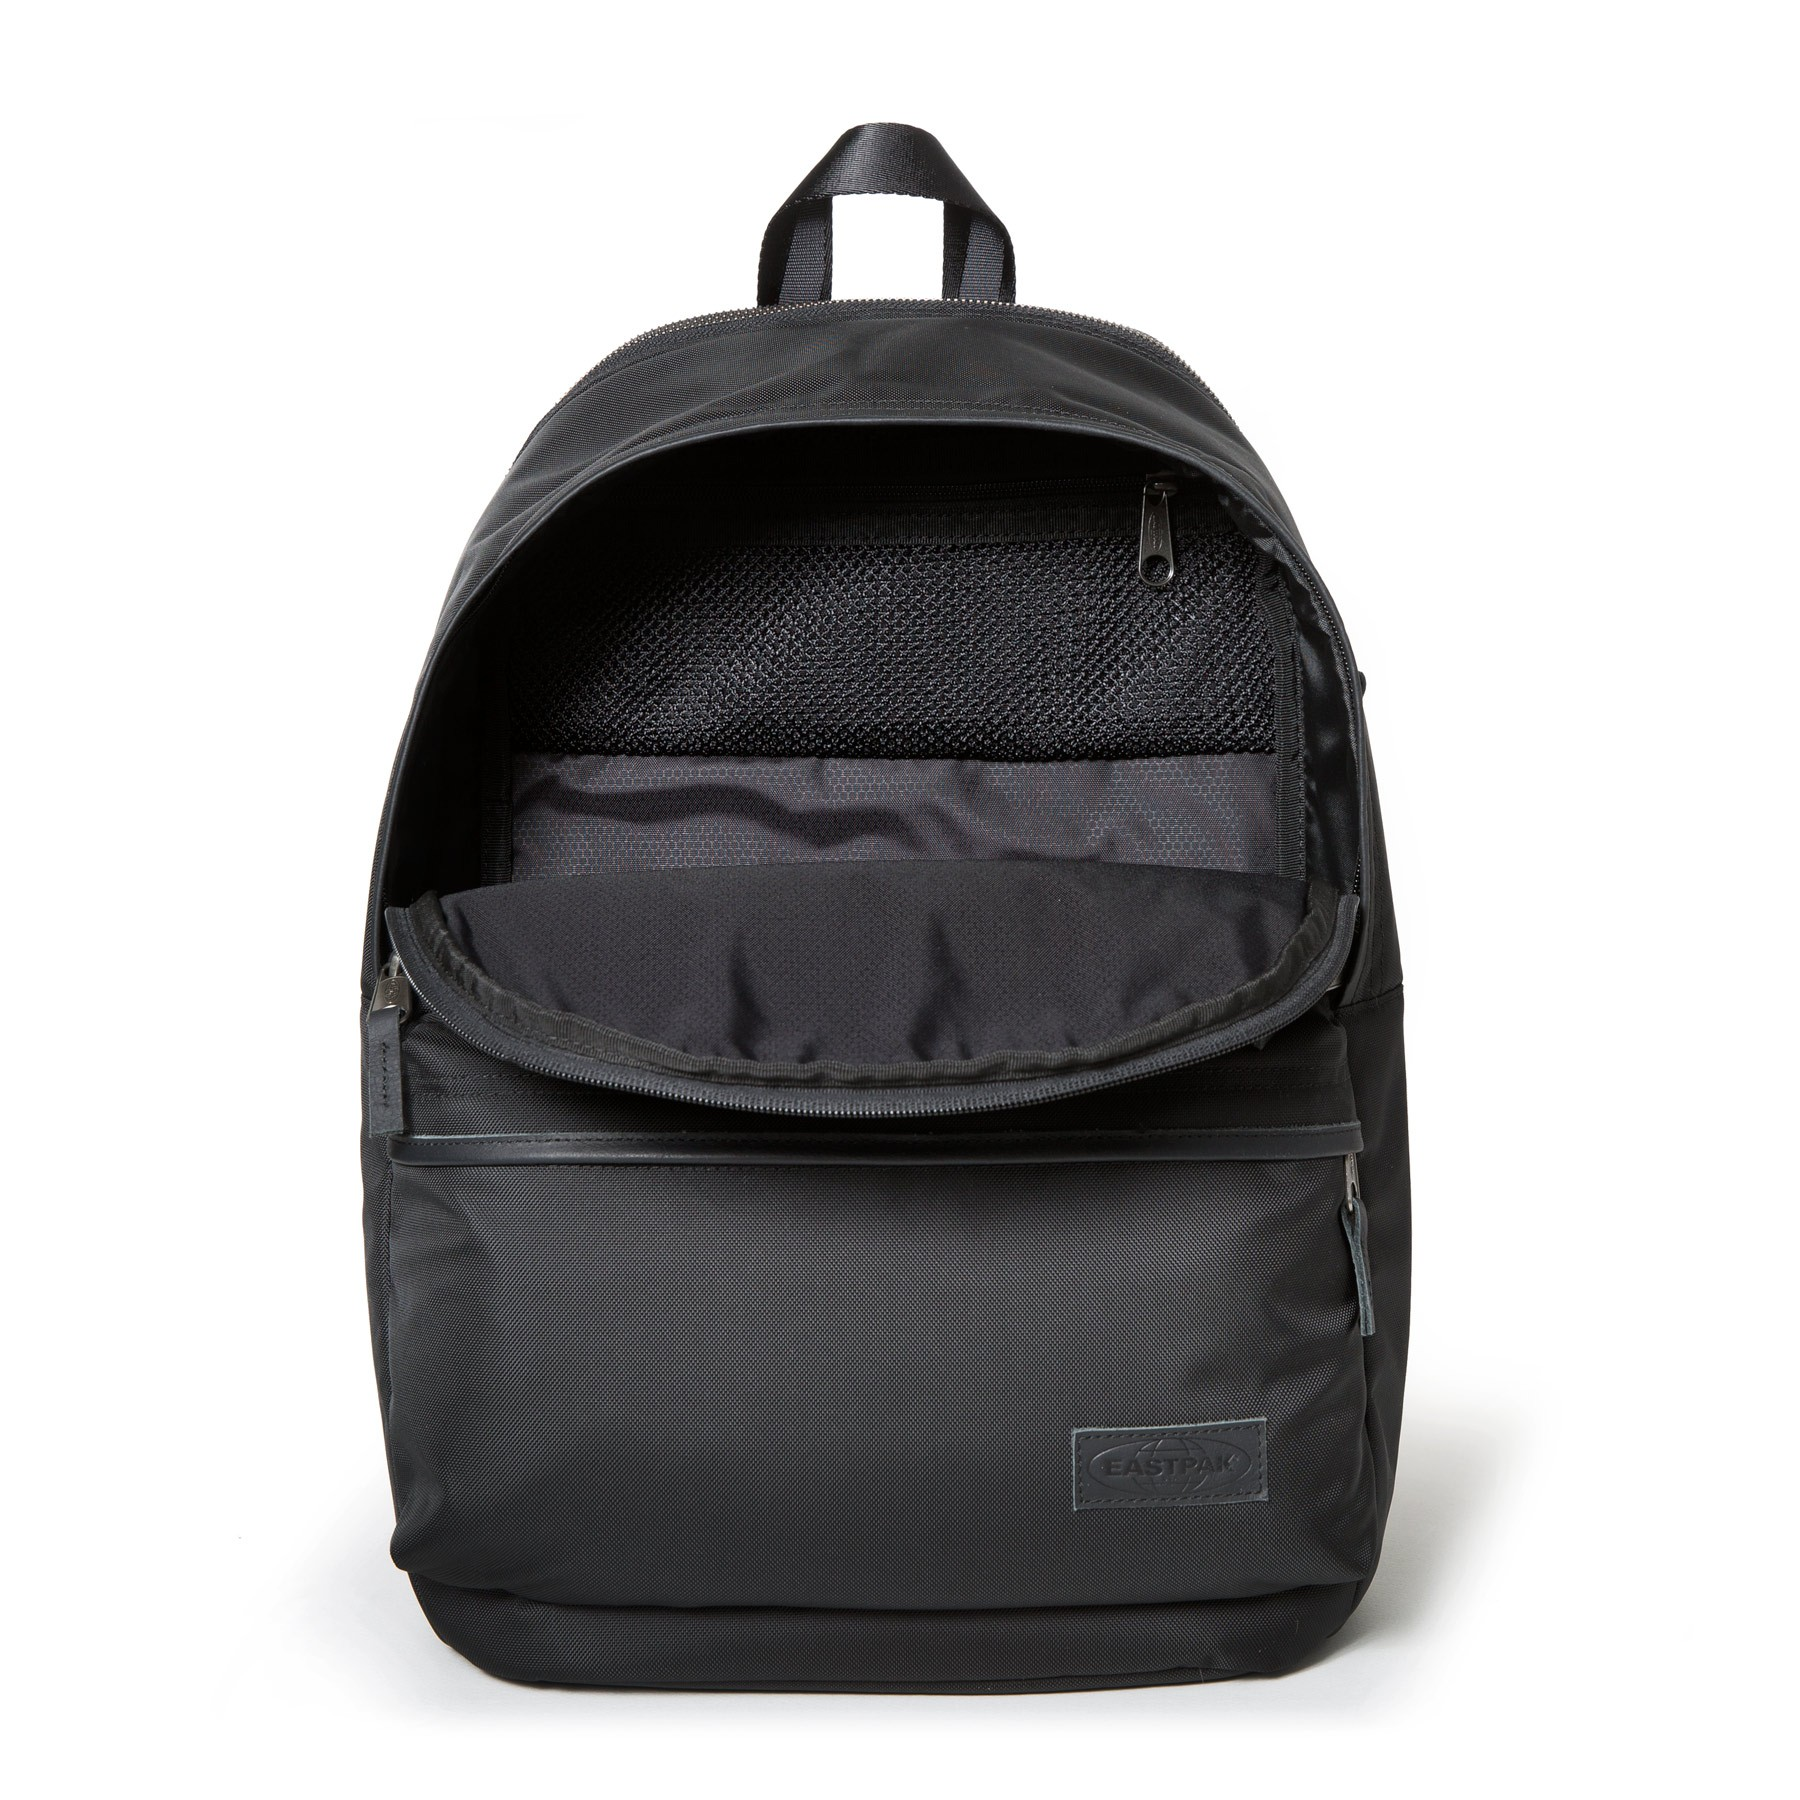 To Back Eastpak Gax8wxqhx Dos Constructed K93 Work Sac A FKlJc1